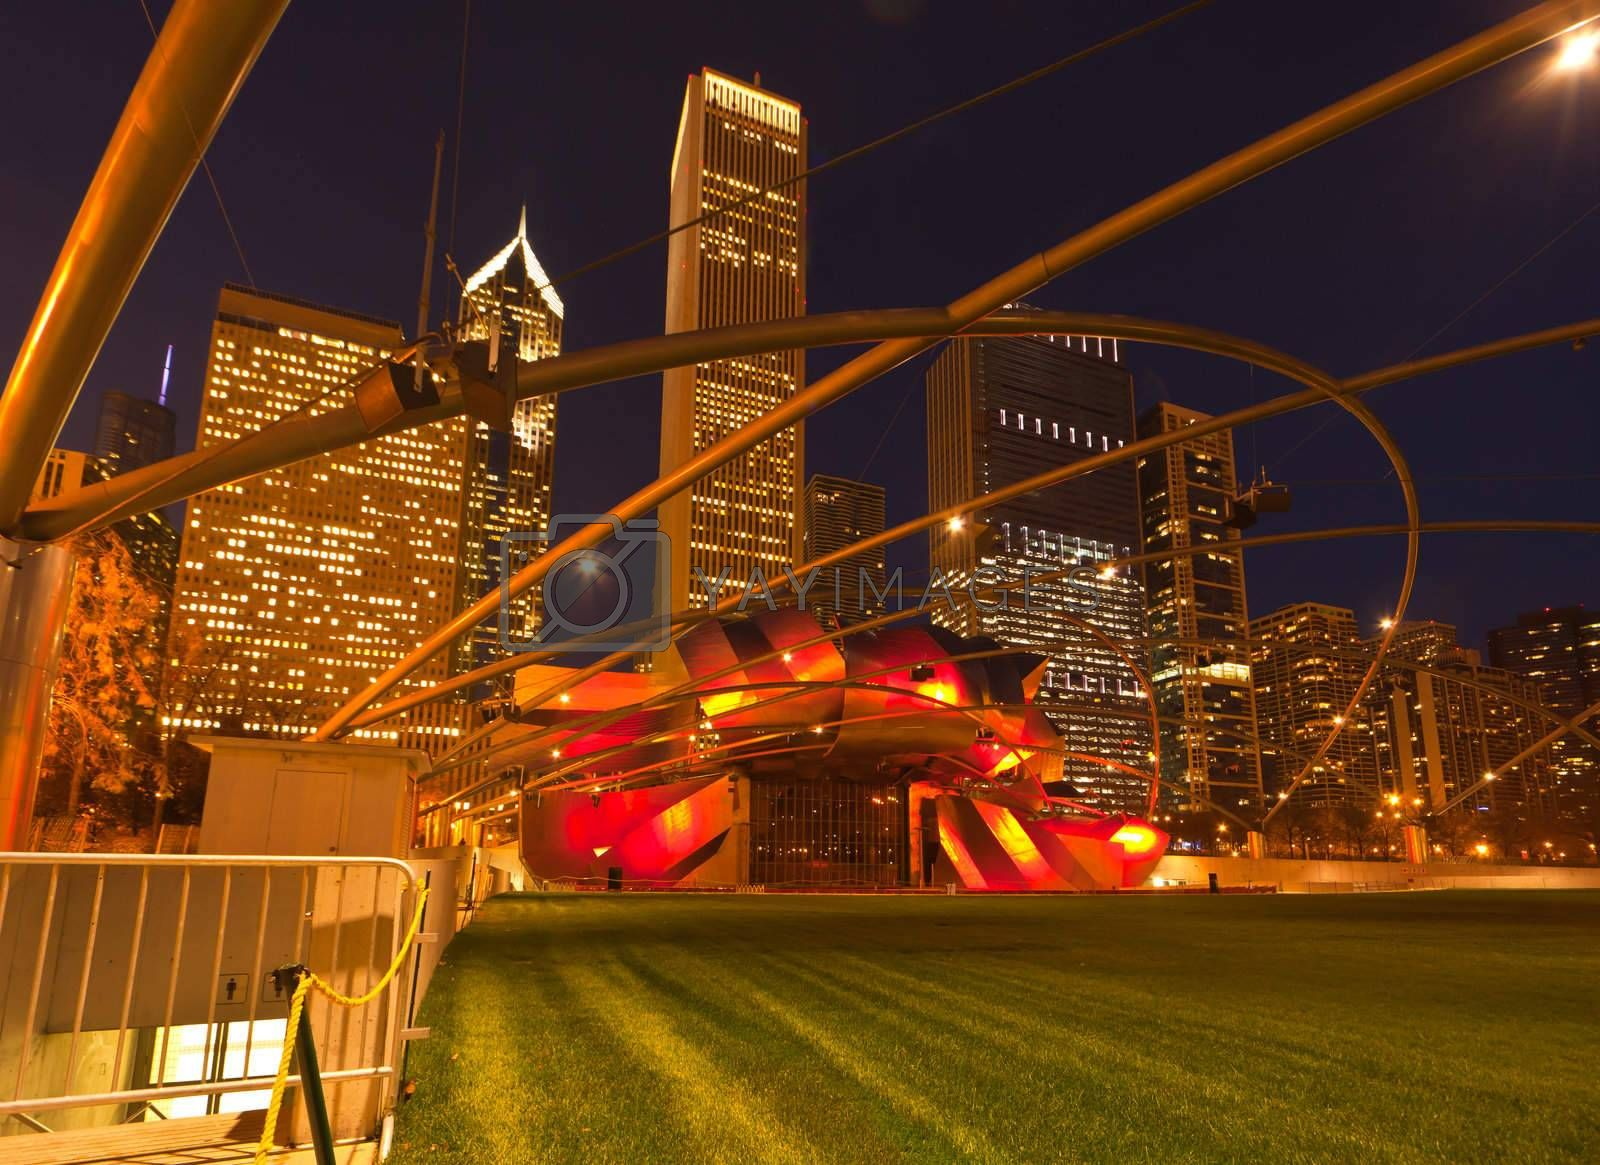 Royalty free image of The Millennium Park in downtown Chicago by gary718